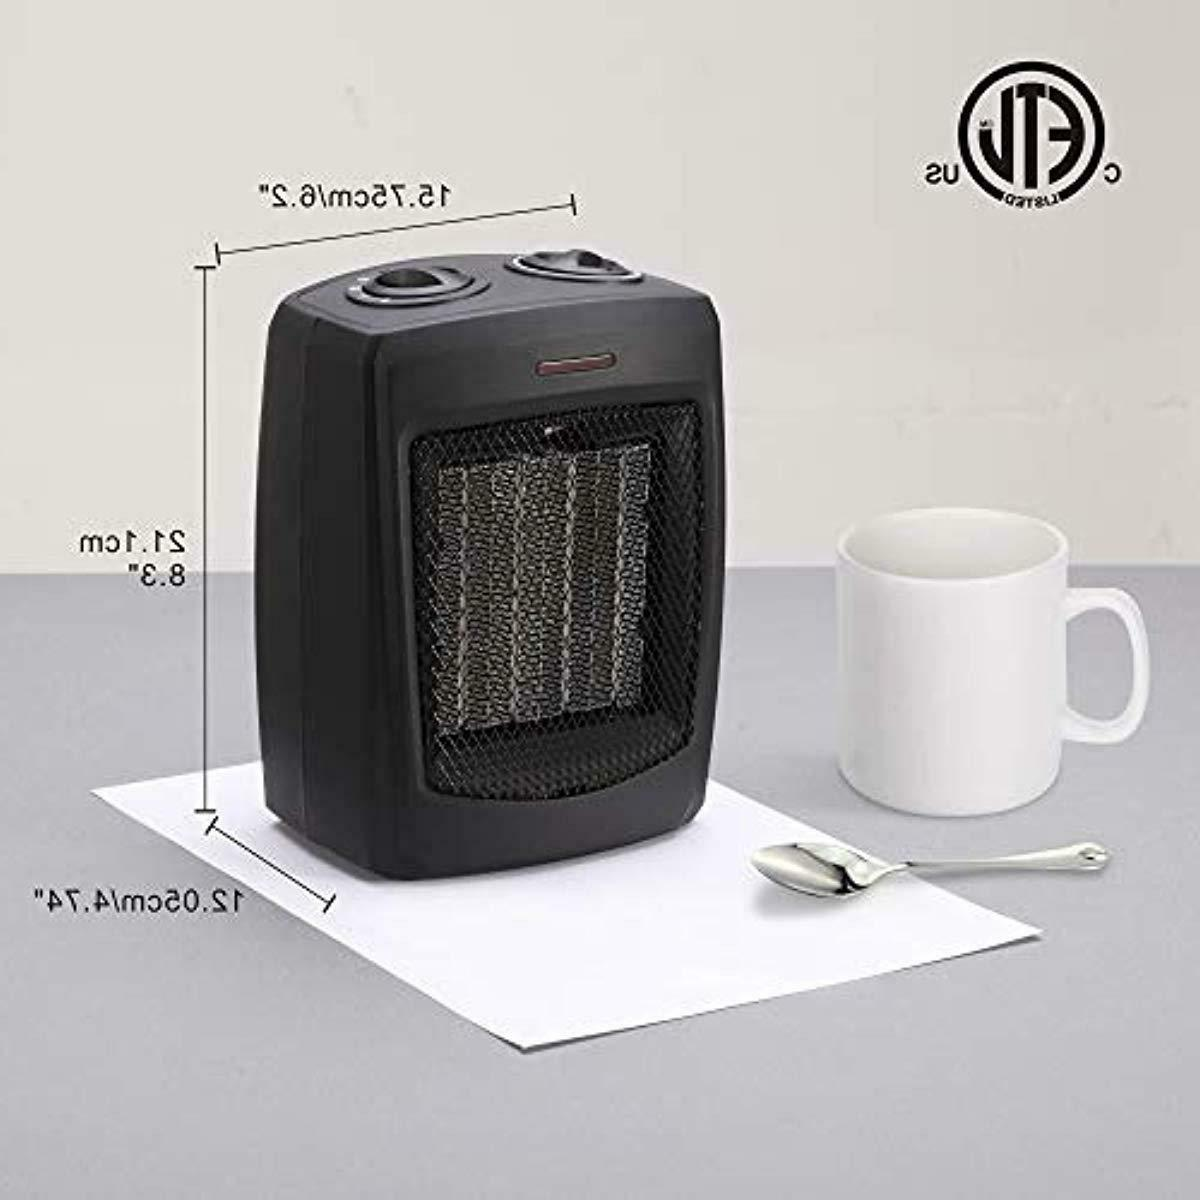 andily Heater Office with Adjusta